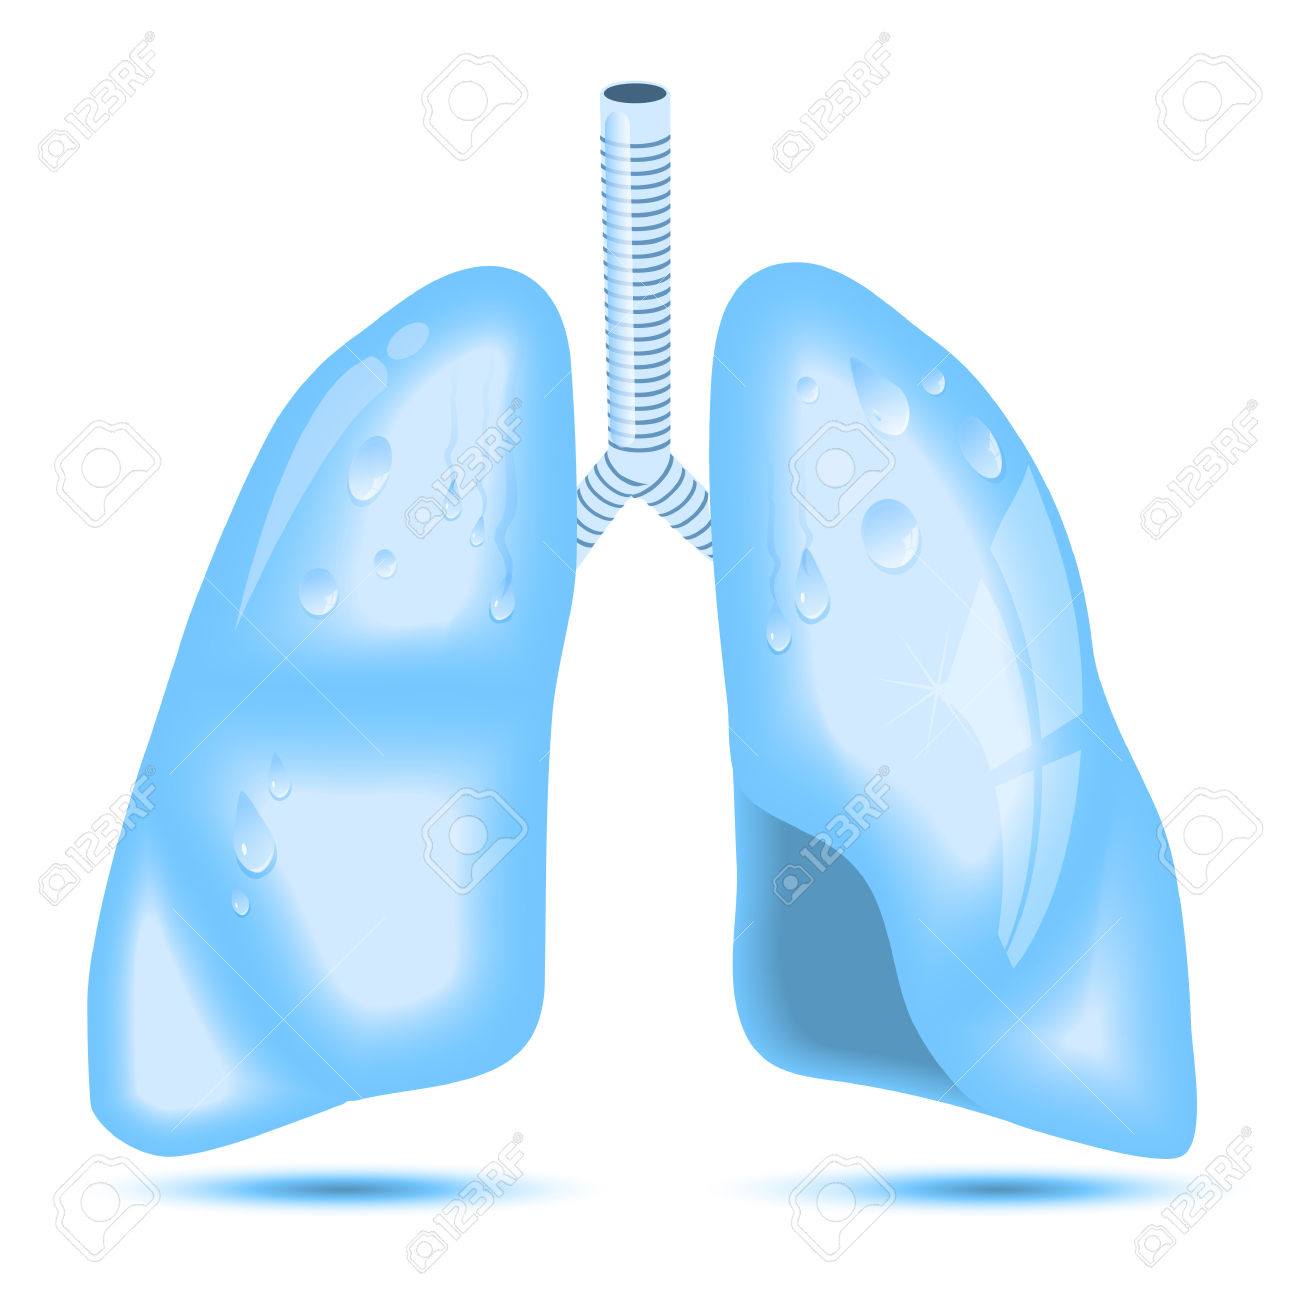 Human Lungs. A Concept For Healthy Lungs. Lungs As Crystal Clear.